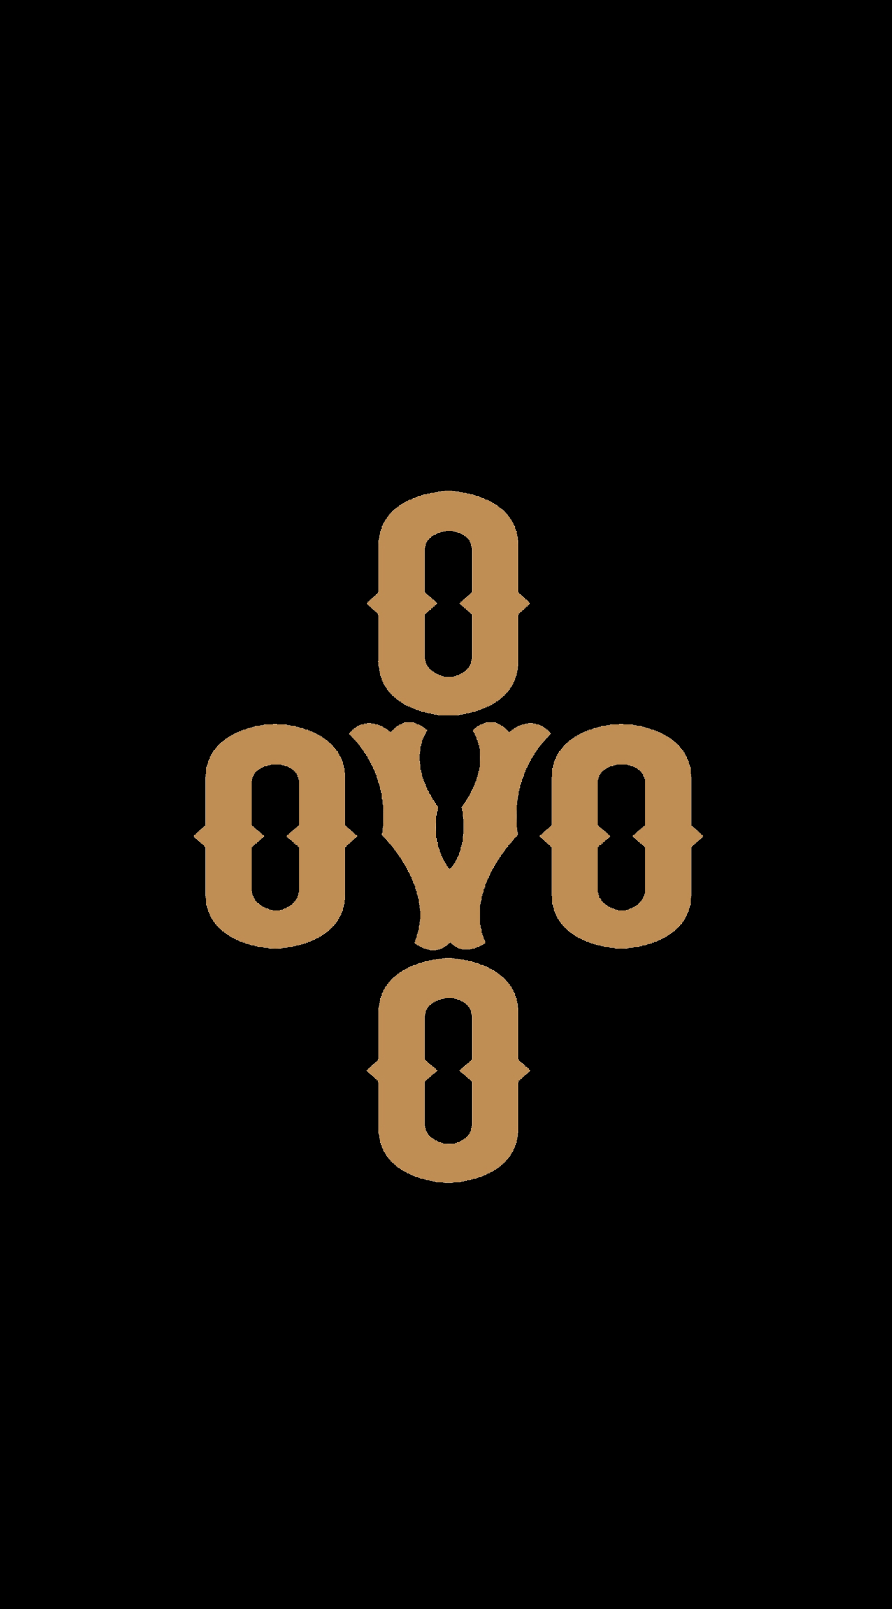 892x1609 Drake - OVO AMOLED Wallpapers - Album on Imgur